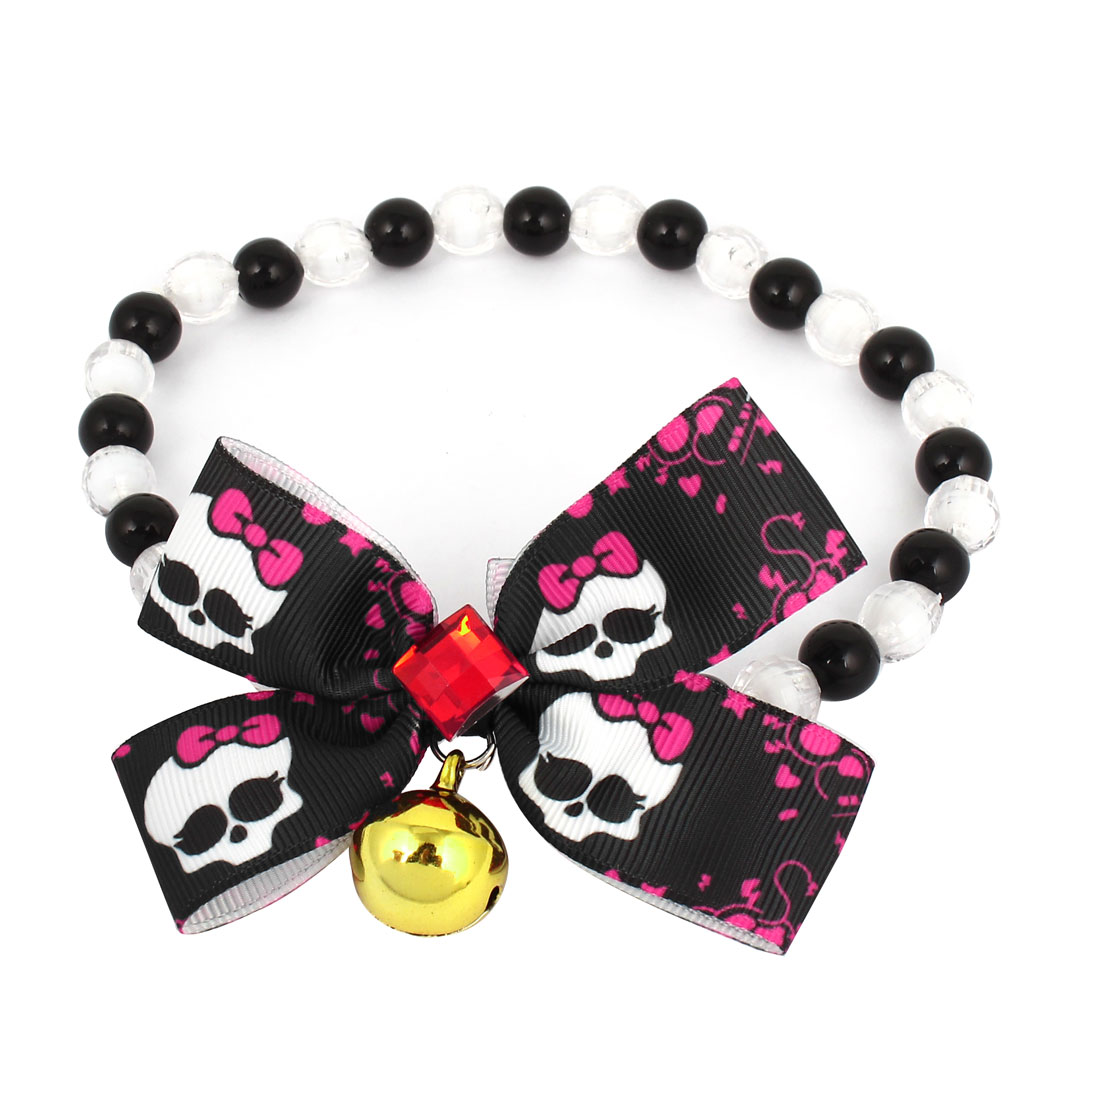 Metal Bell Pendant Bowtie Accent Pet Dog Plastic Beads Collar Necklace Black White M